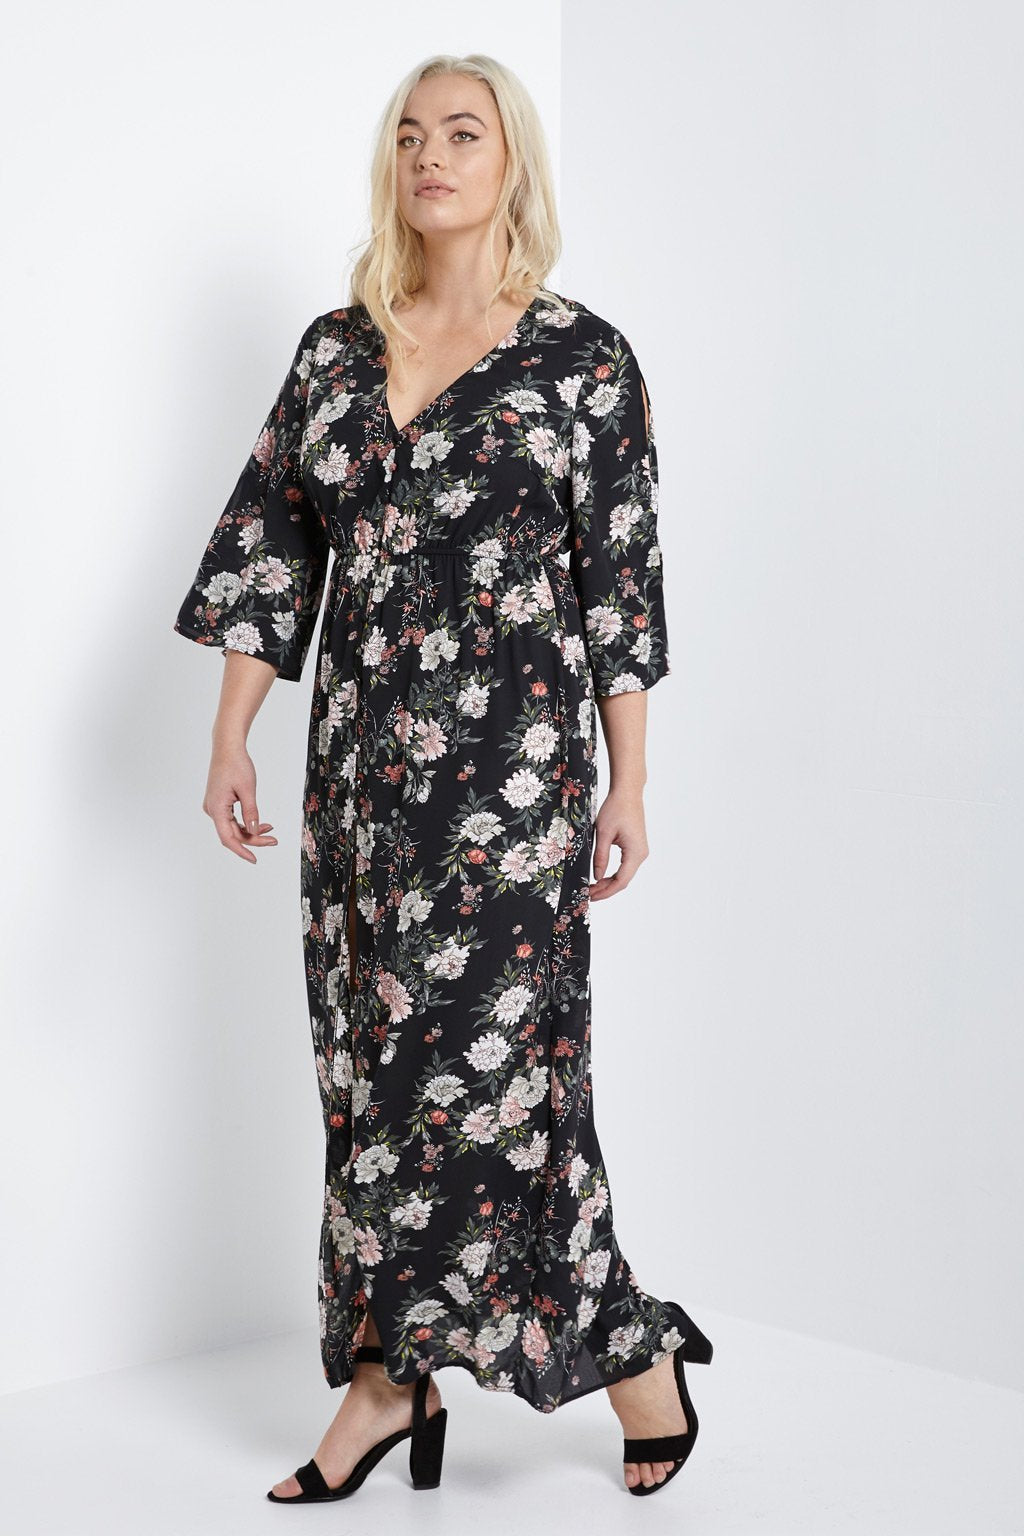 Poshsquare Plus 1XL / Black Floral Button-Down Maxi Dress Plus Size